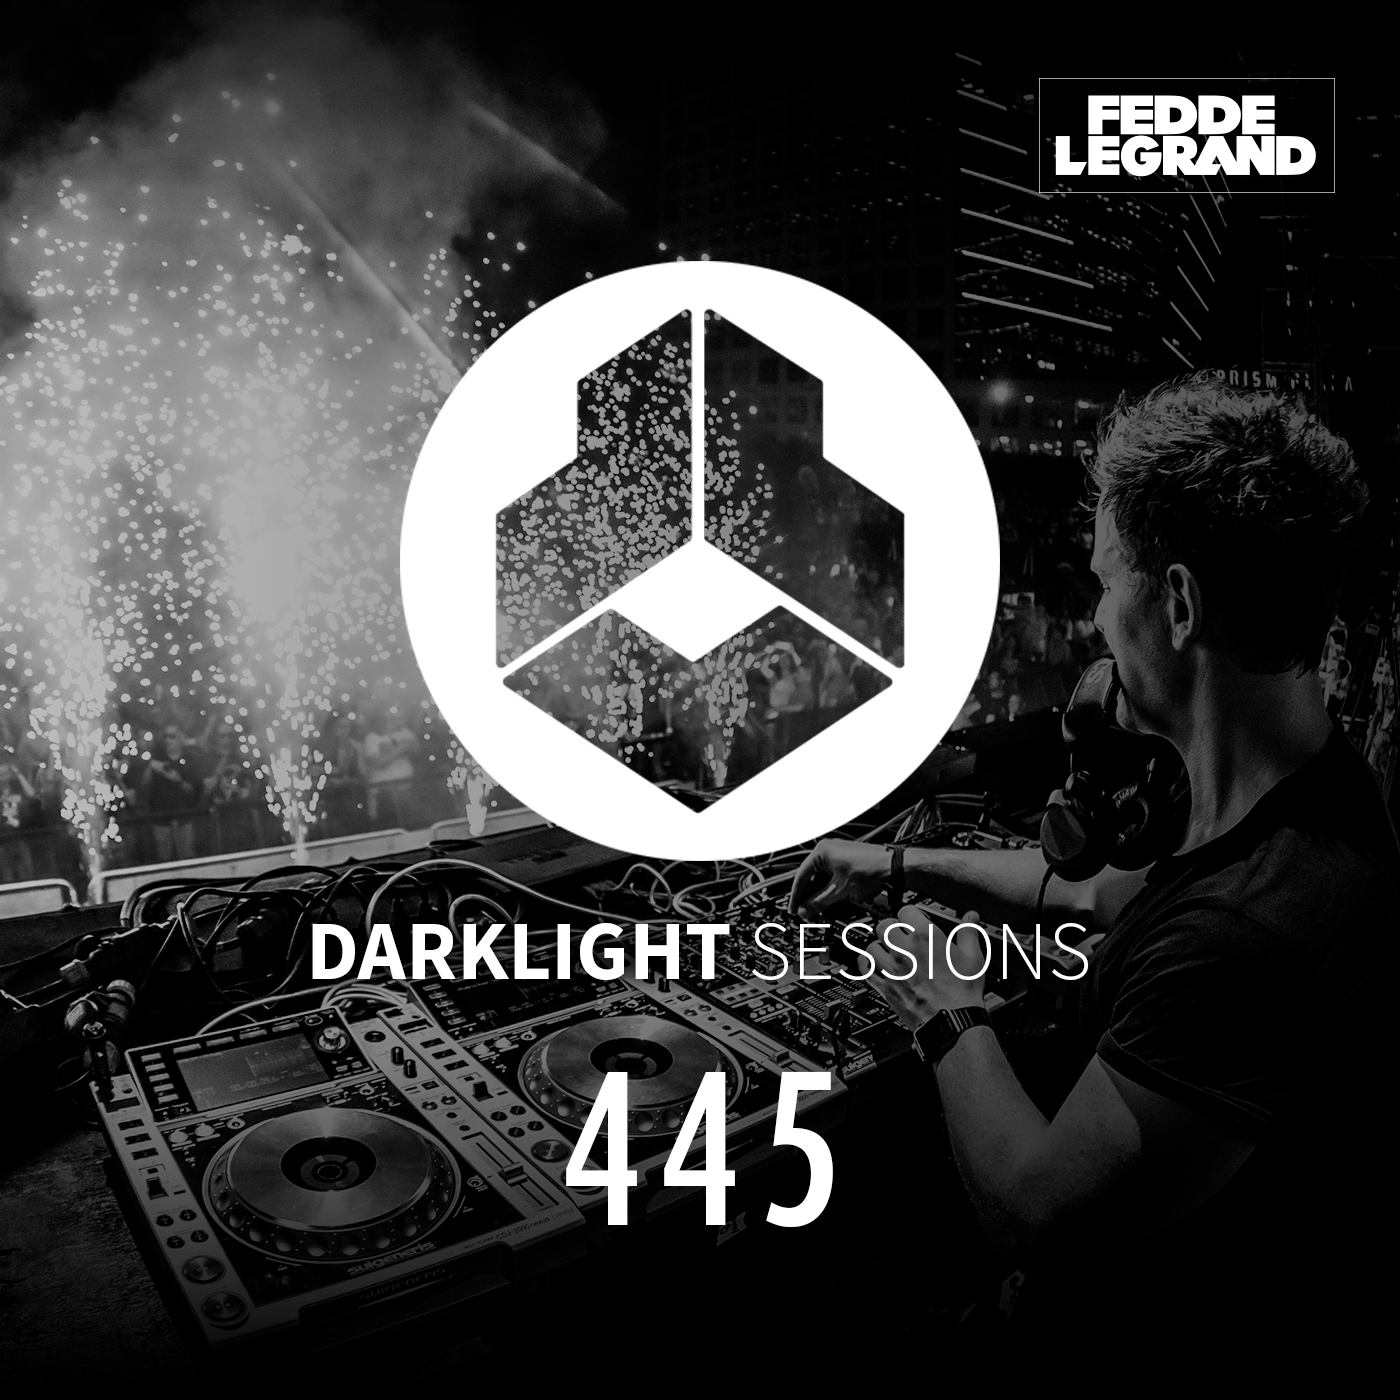 Darklight Sessions 445